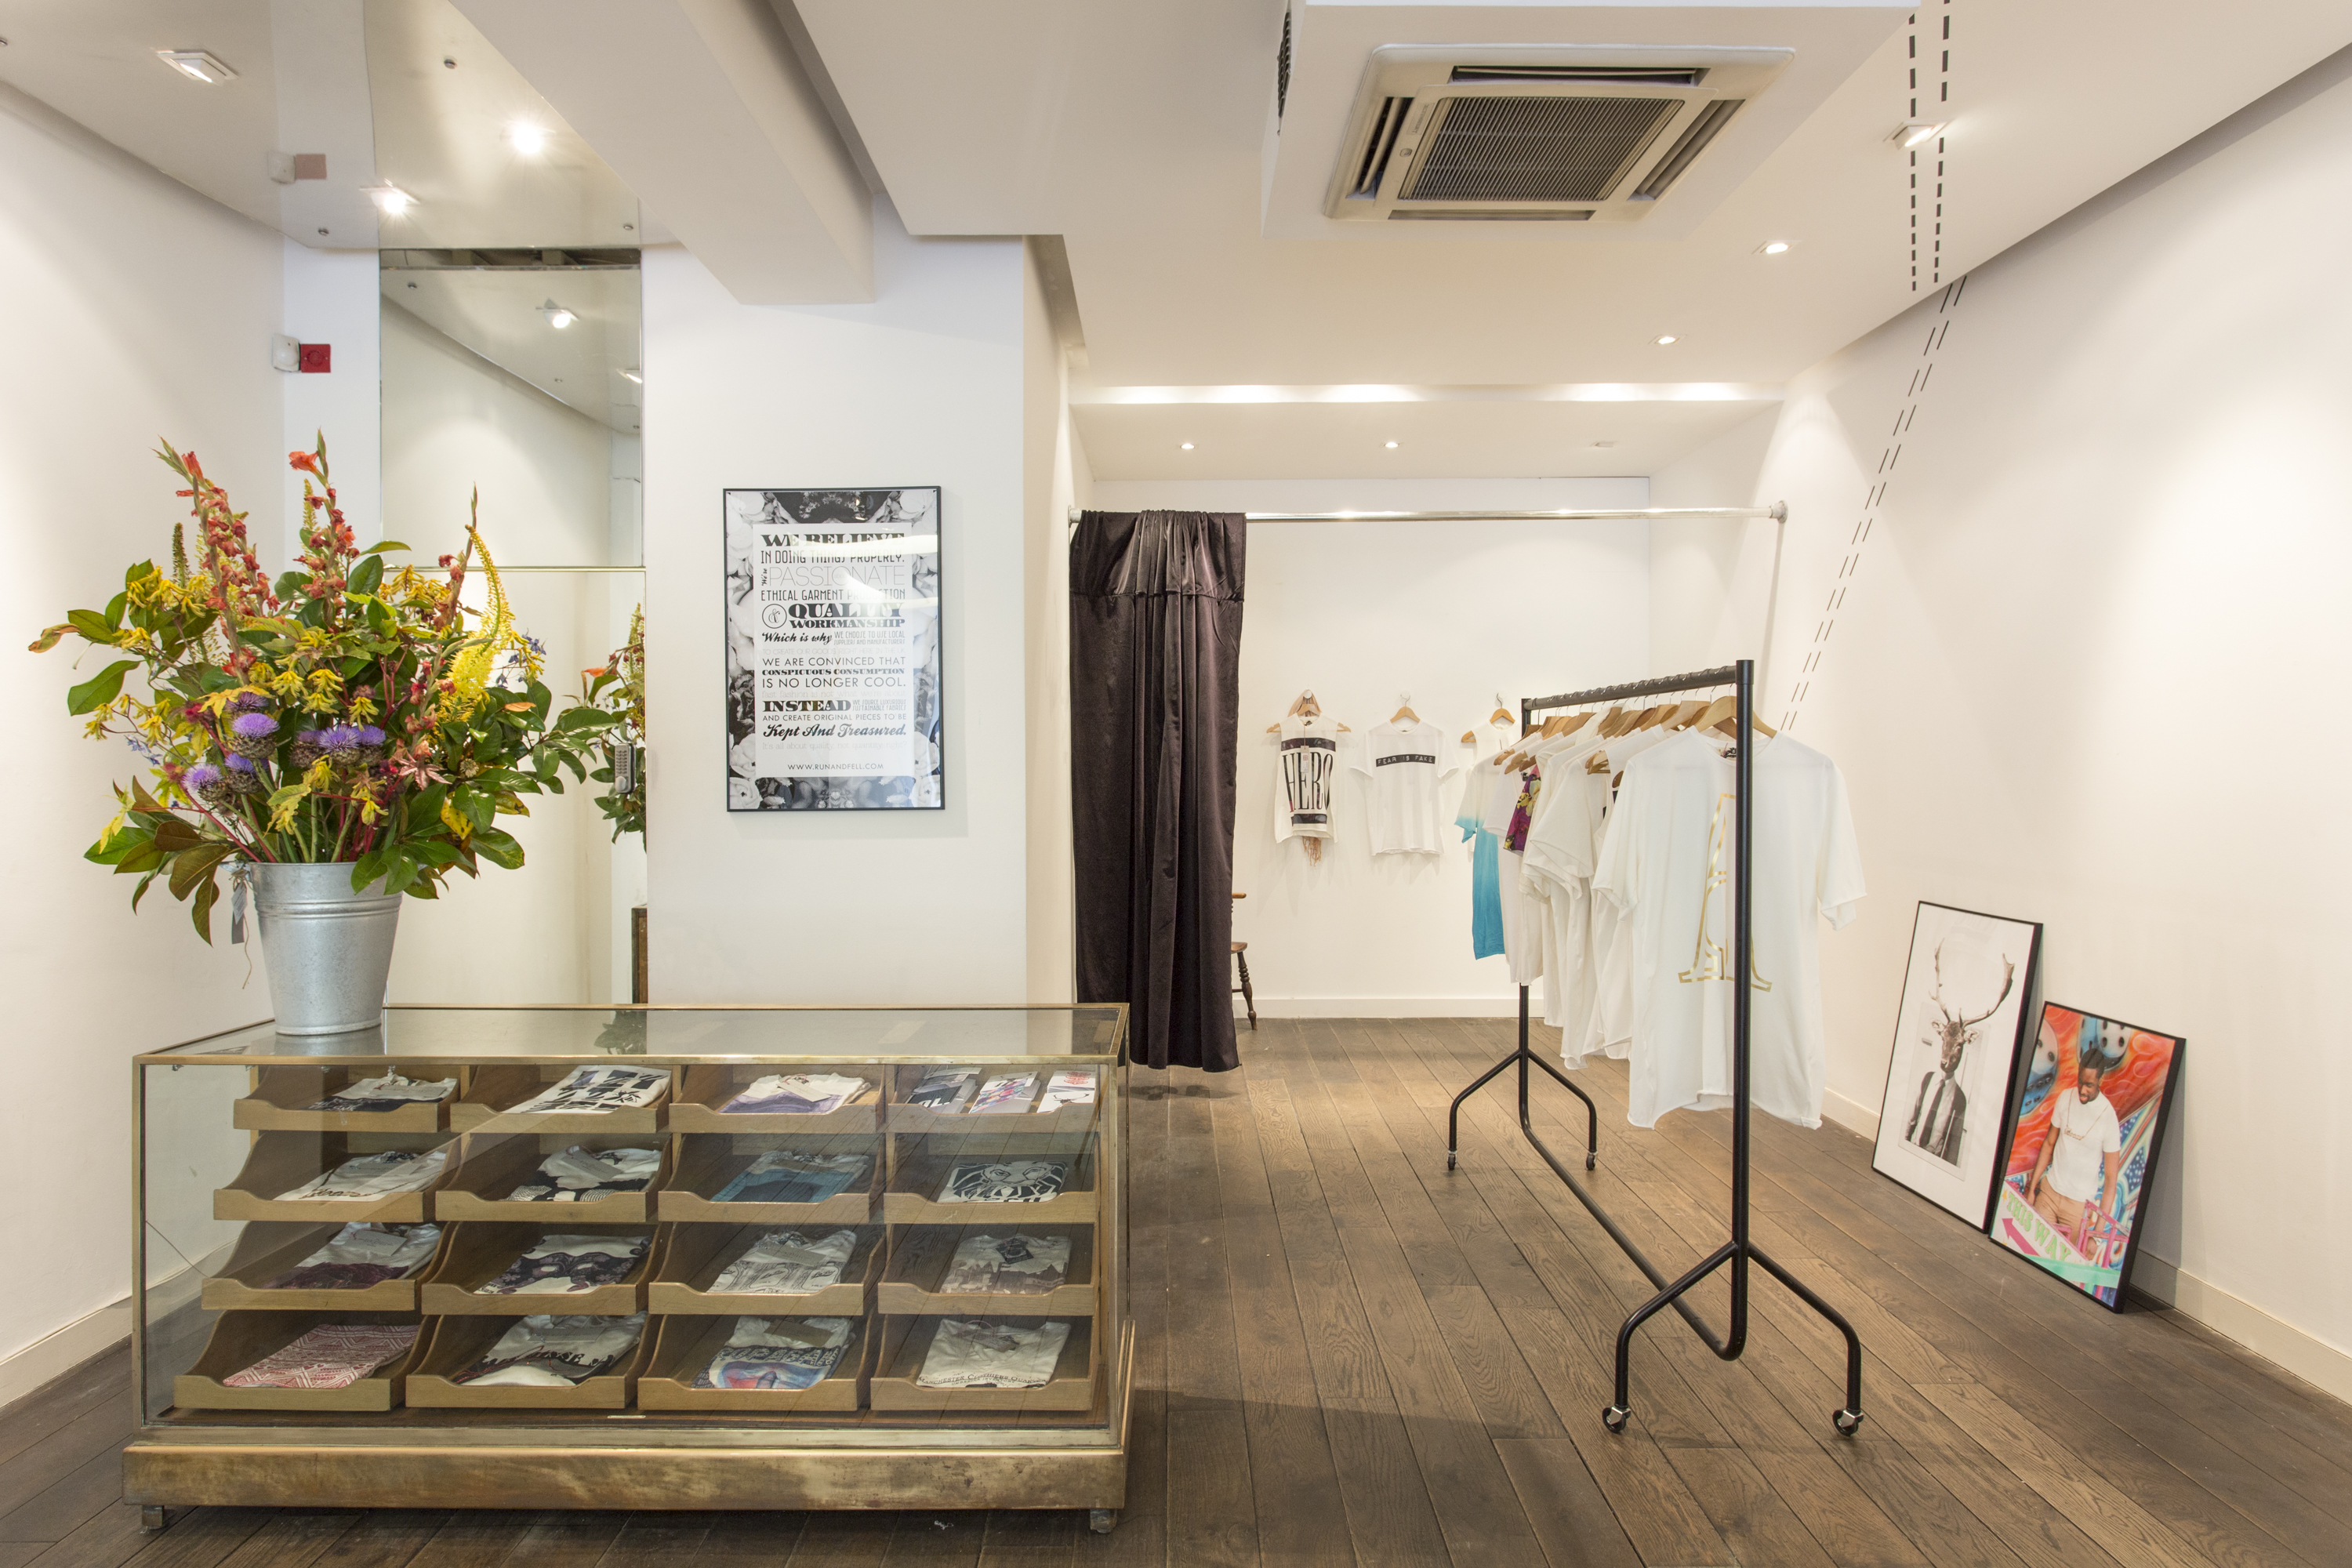 Small space design tips not tom - Small retail space collection ...